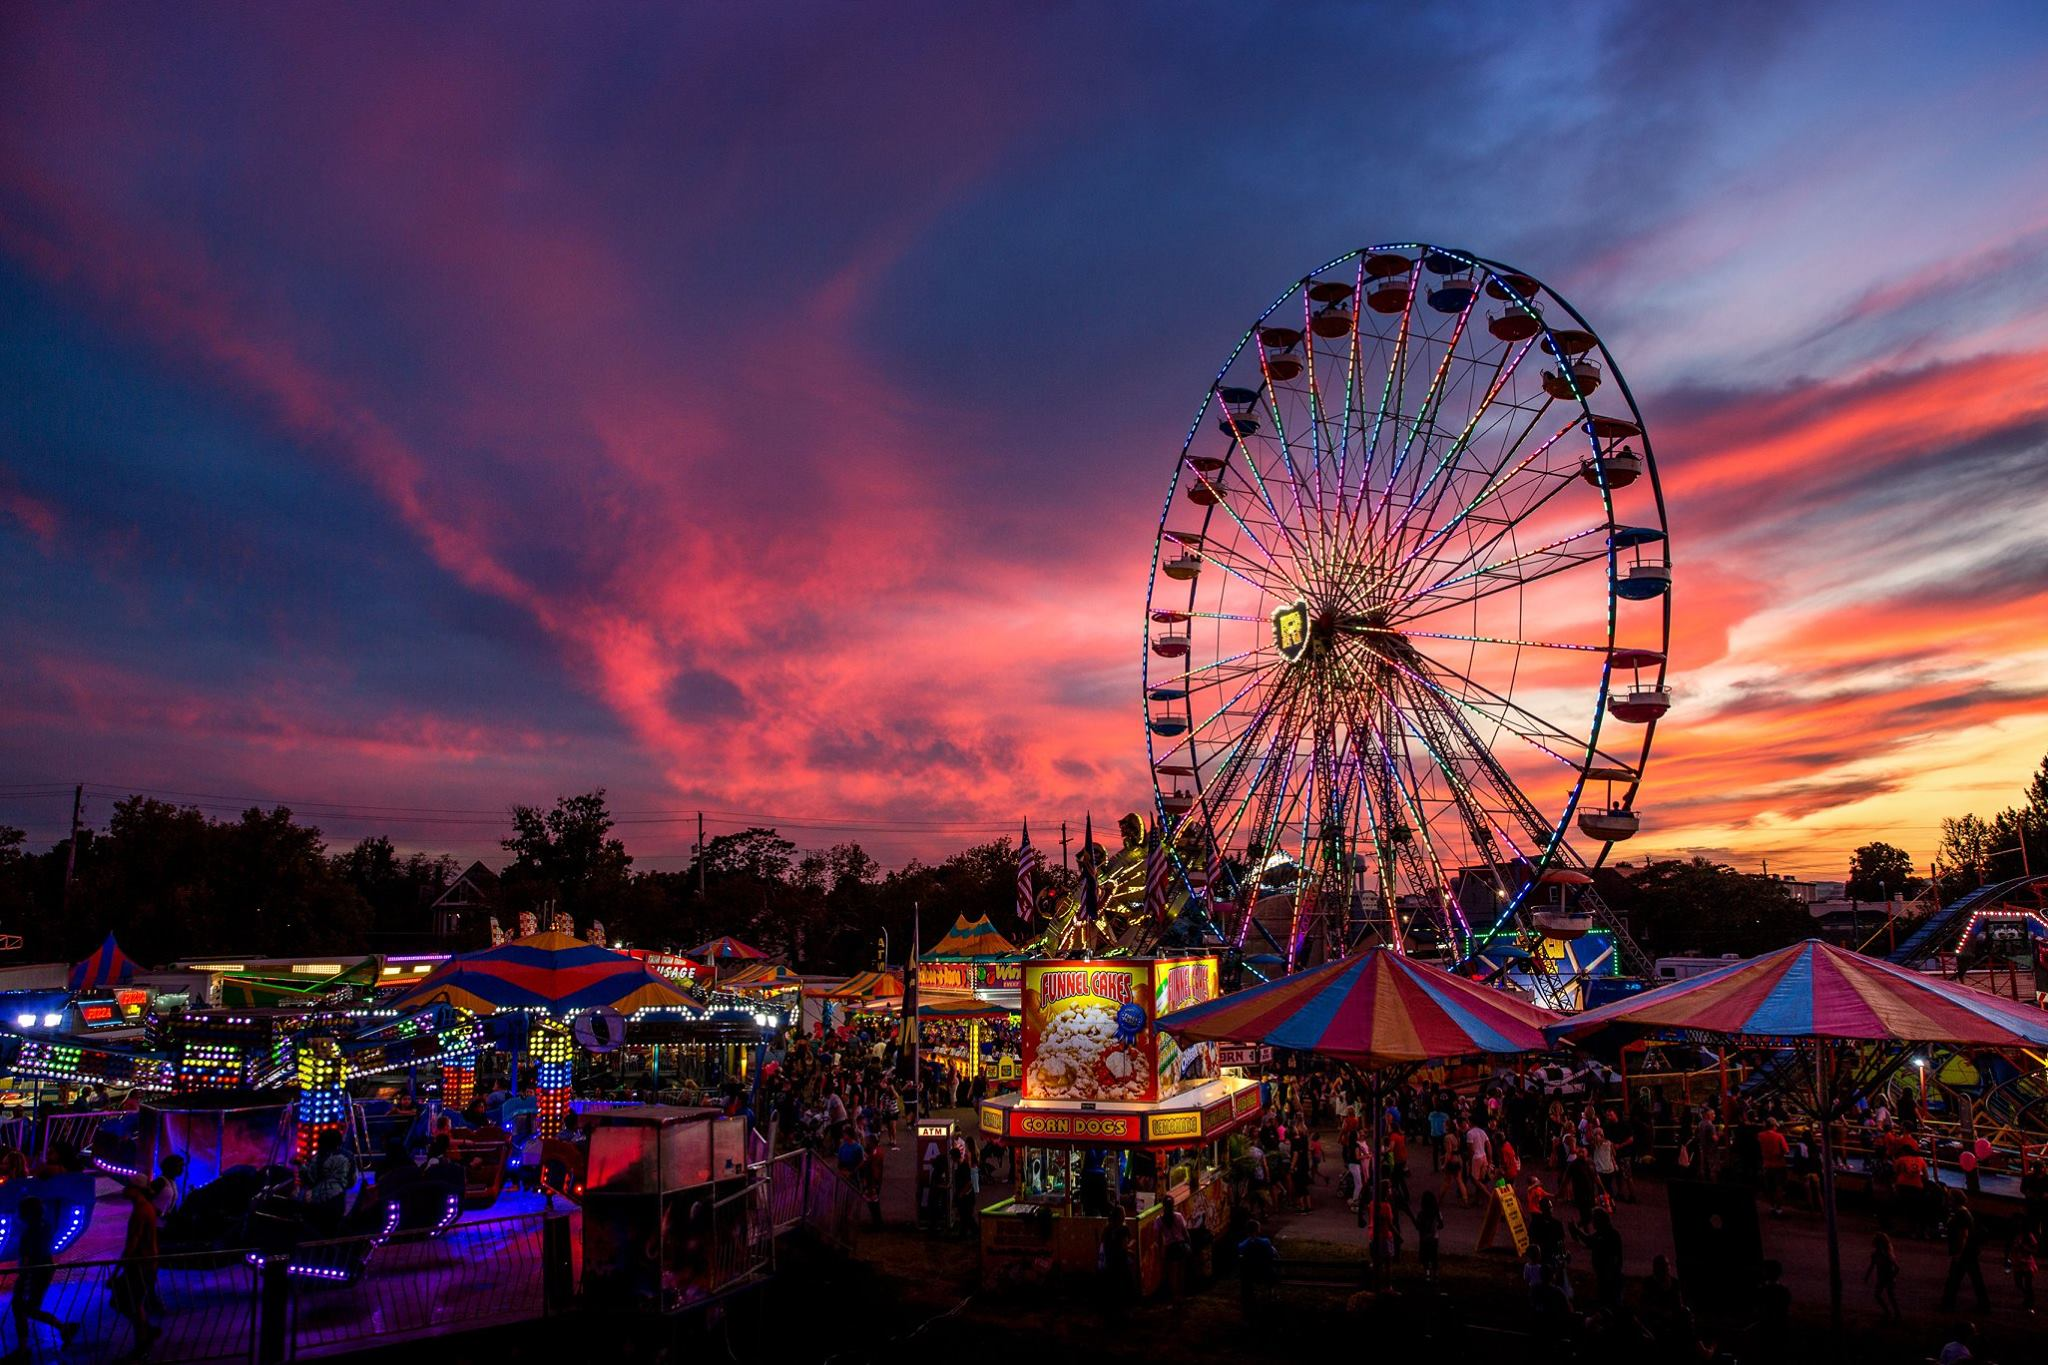 Frederick County Sheriff's Office To Provide Security For The Great Frederick Fair